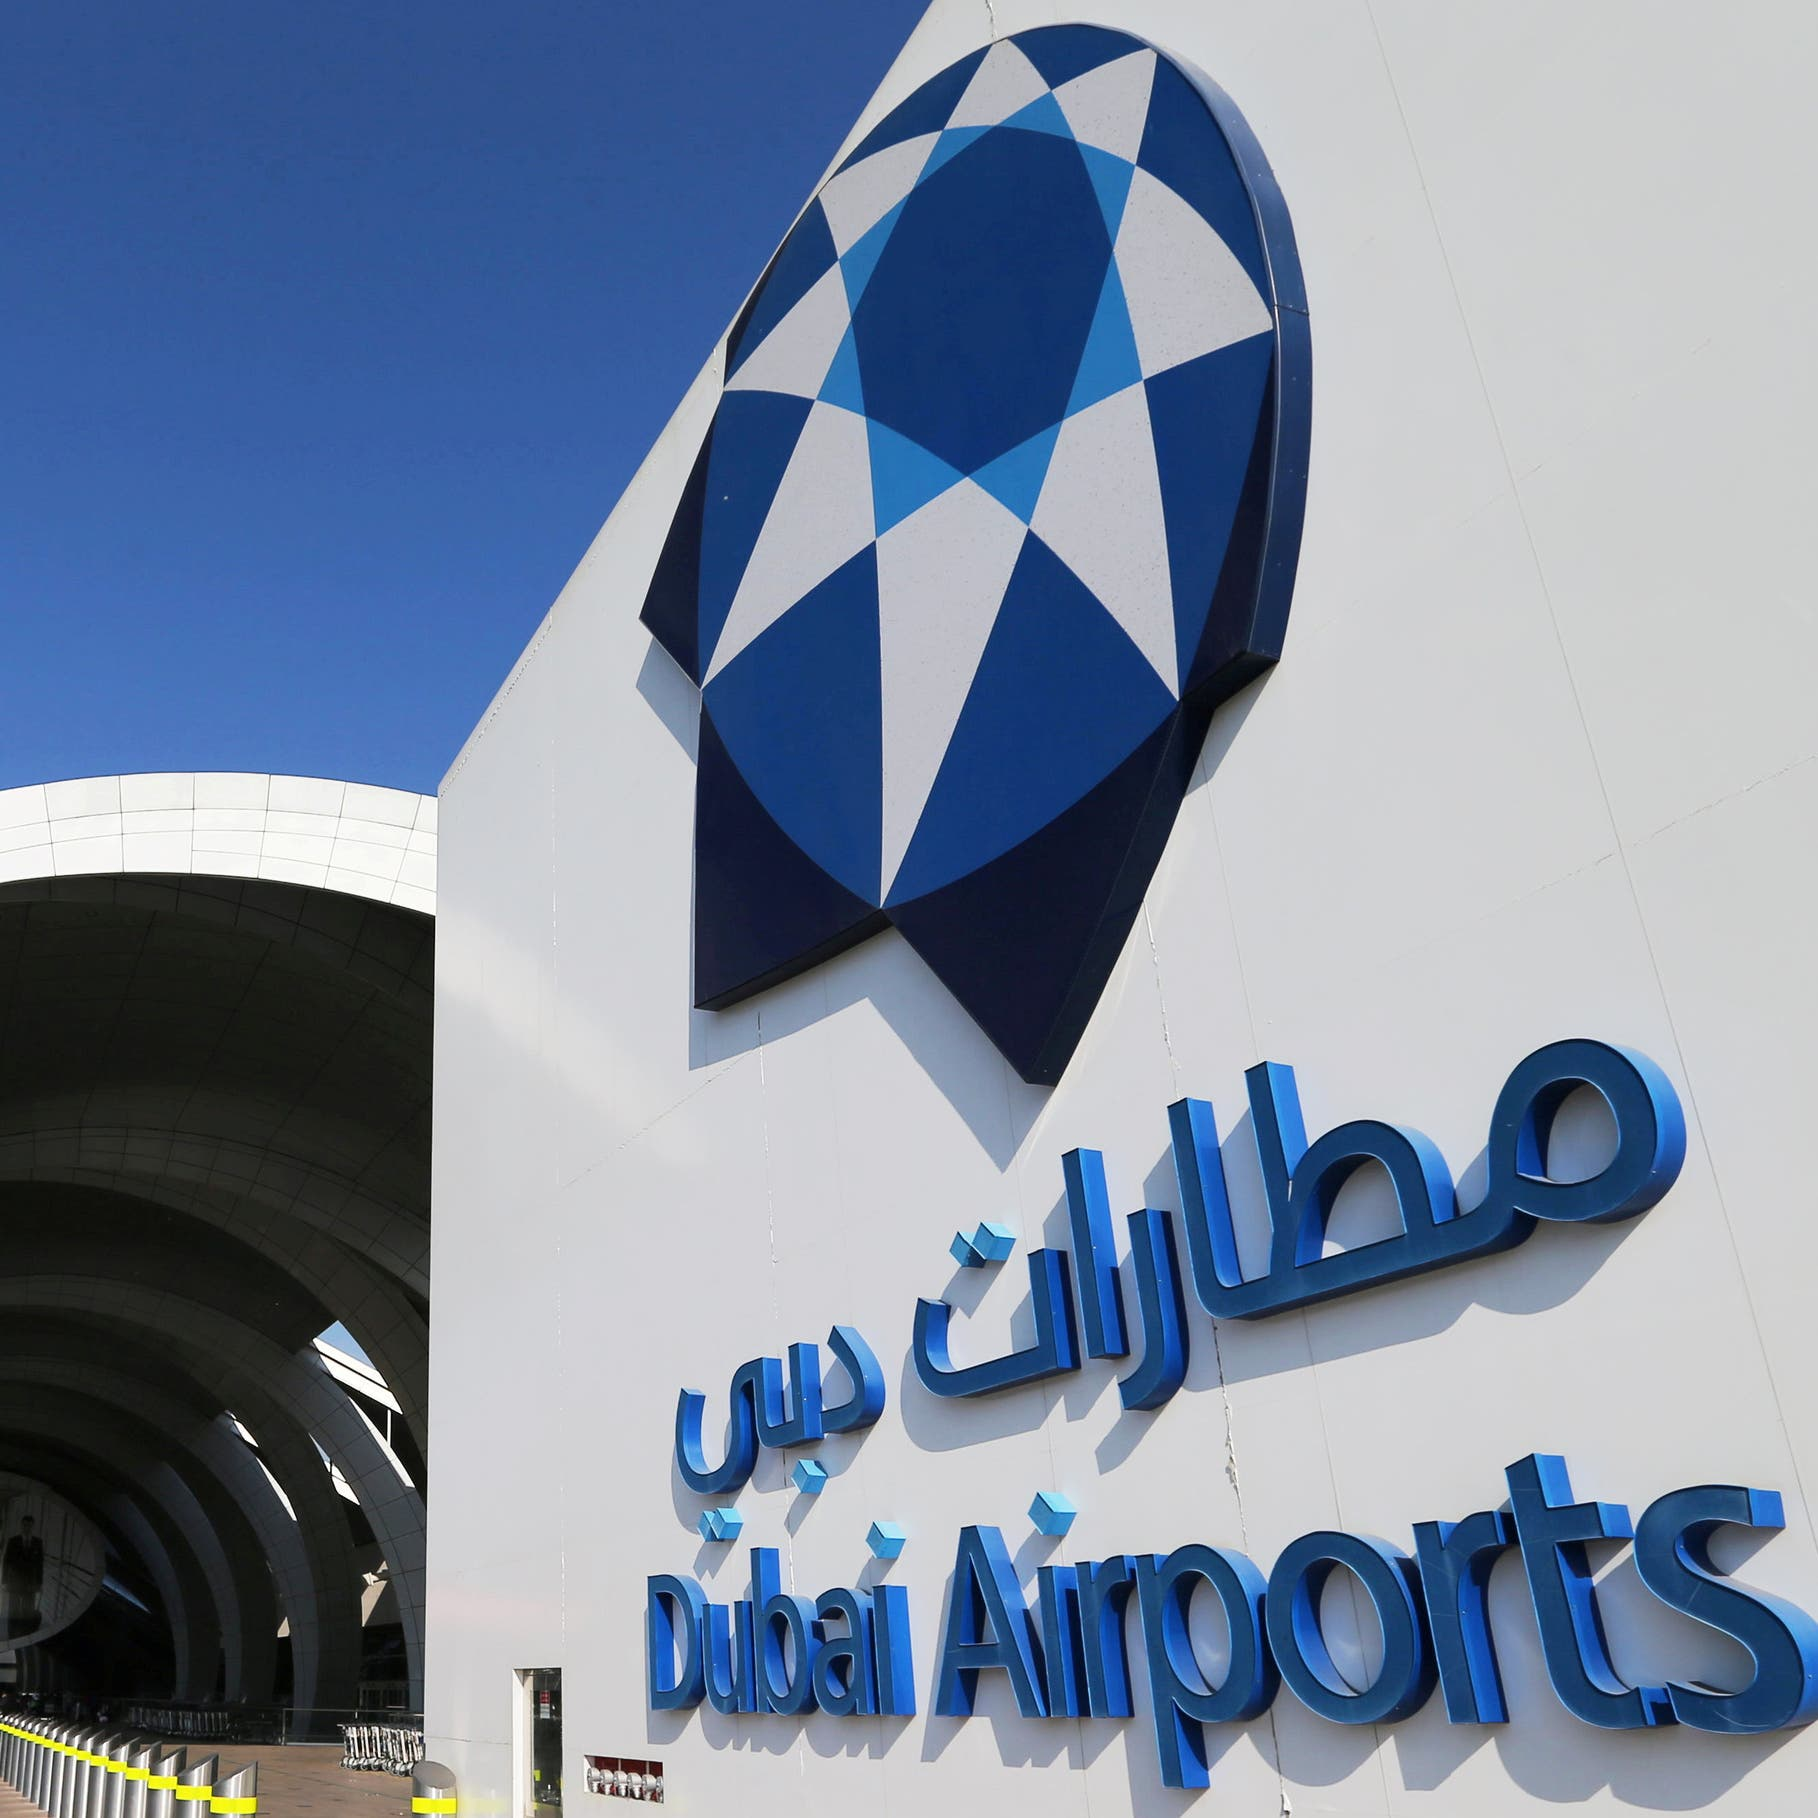 Dubai airport operator says terminal 1 to reopen June 24 after COVID-19 shutdown